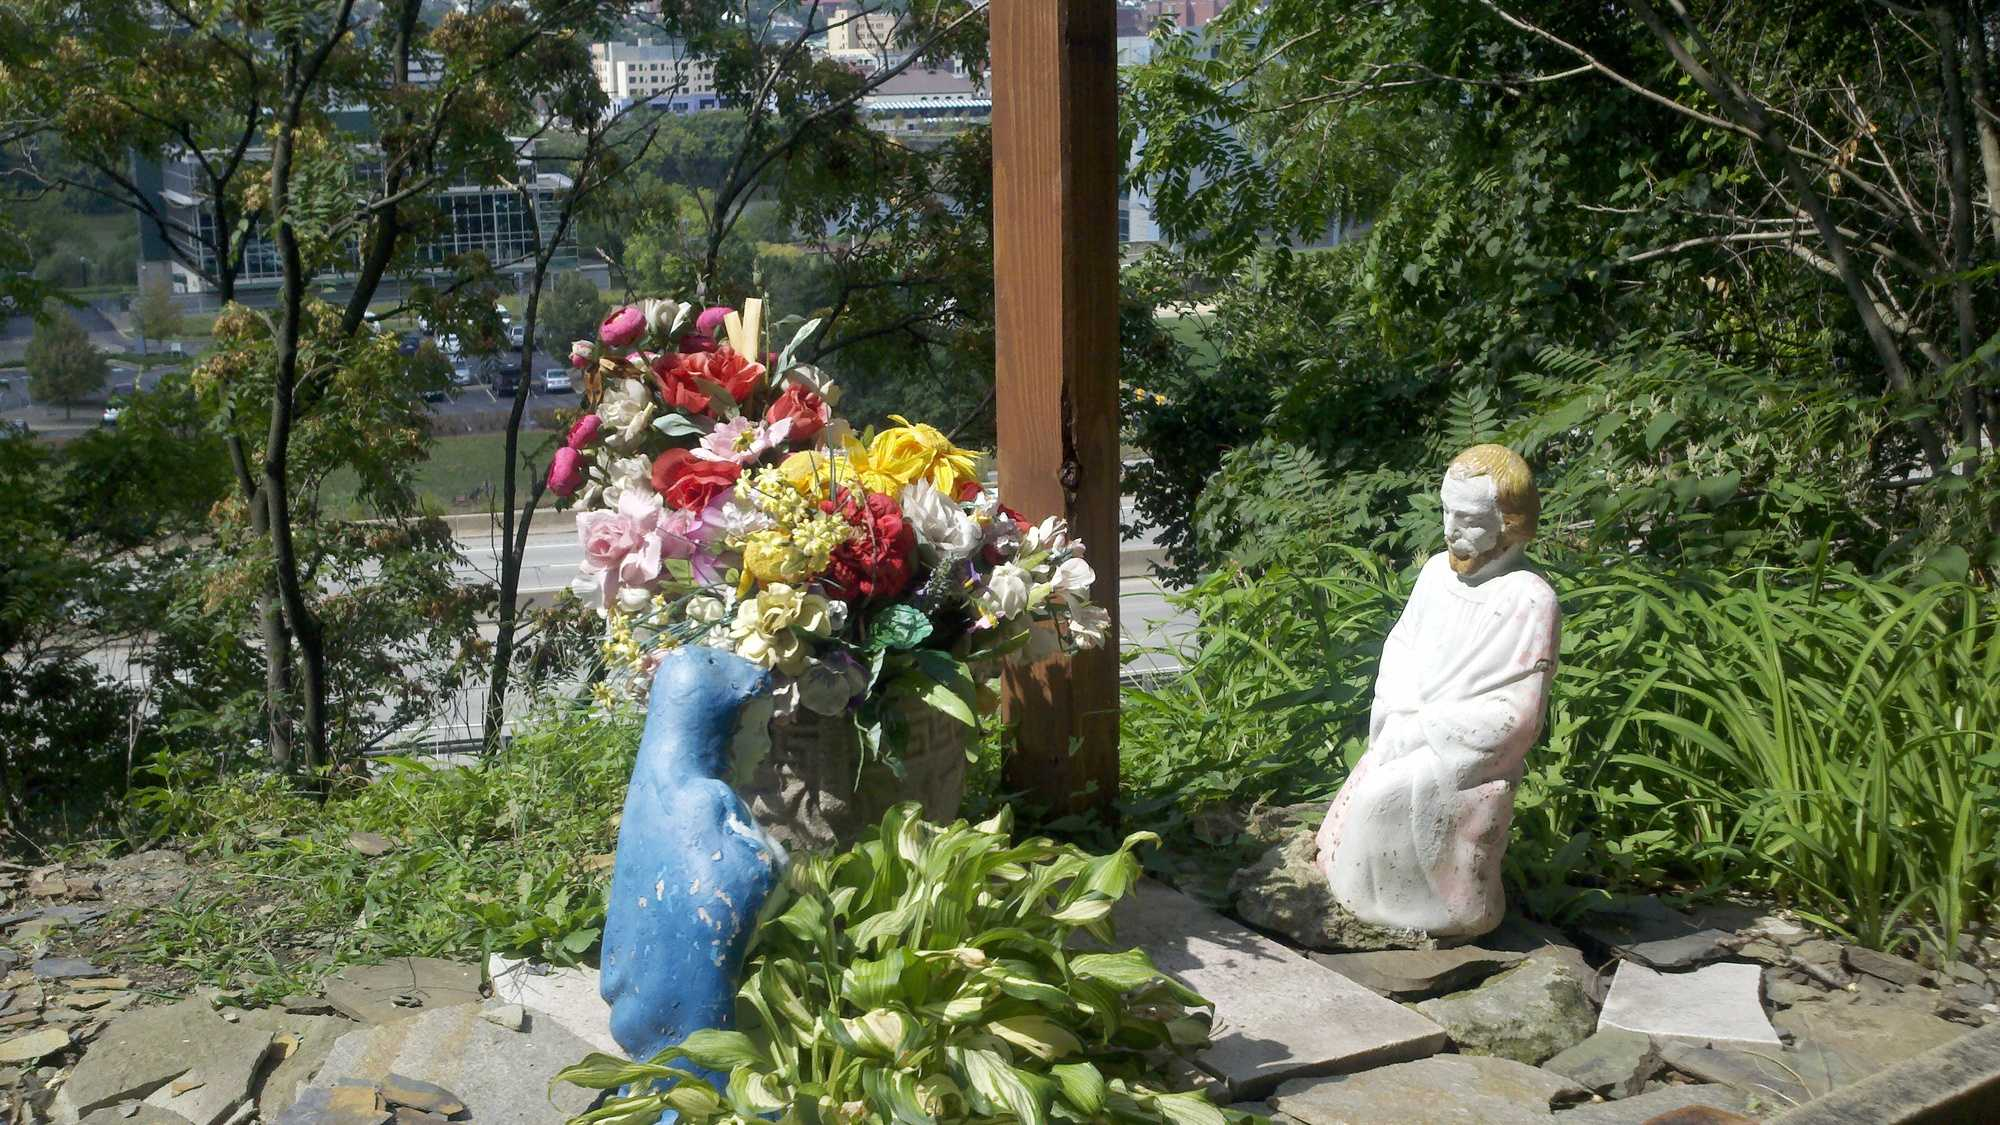 Over the years, the shrine has grown as people have stopped by and dropped off their own religious items.